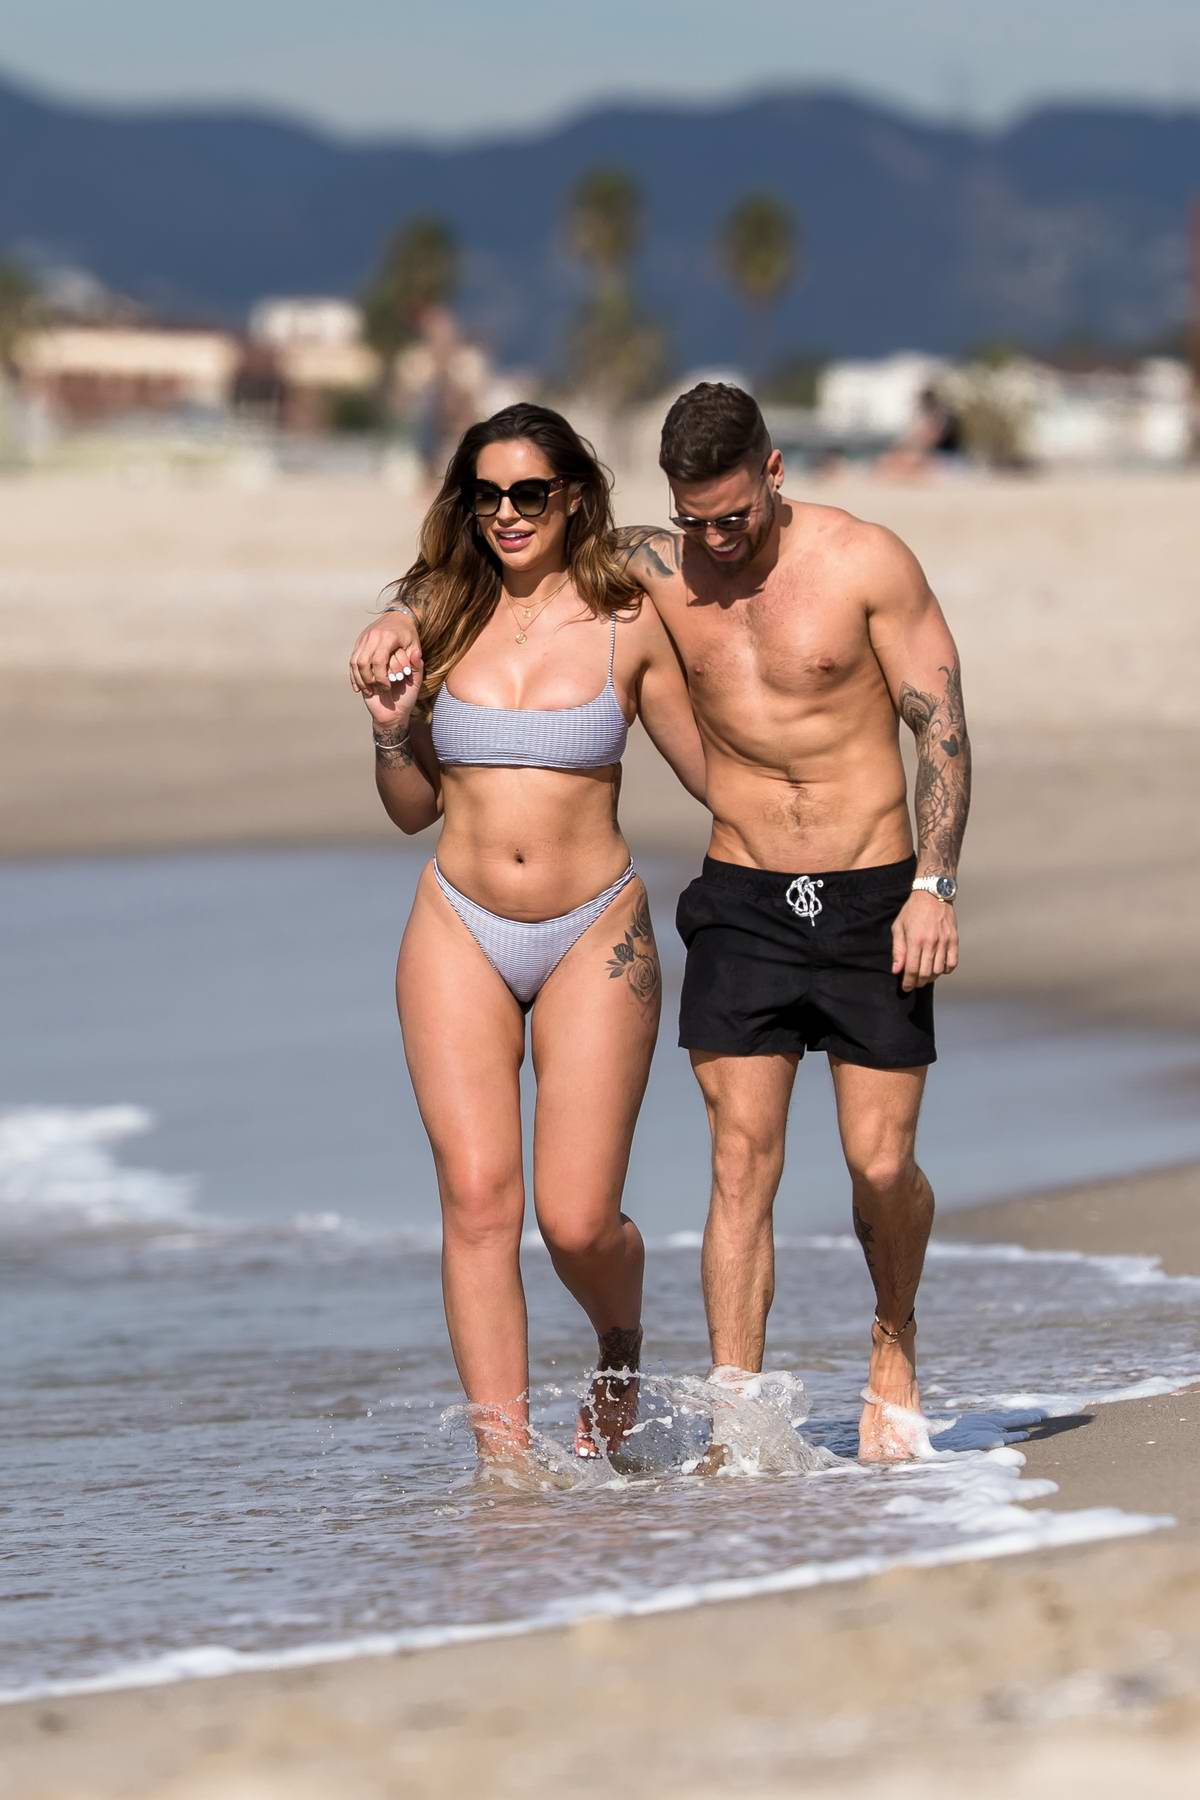 Jessica Shears dons a bikini while she enjoys some PDA with fiance Dom Lever at the beach in Santa Monica, California